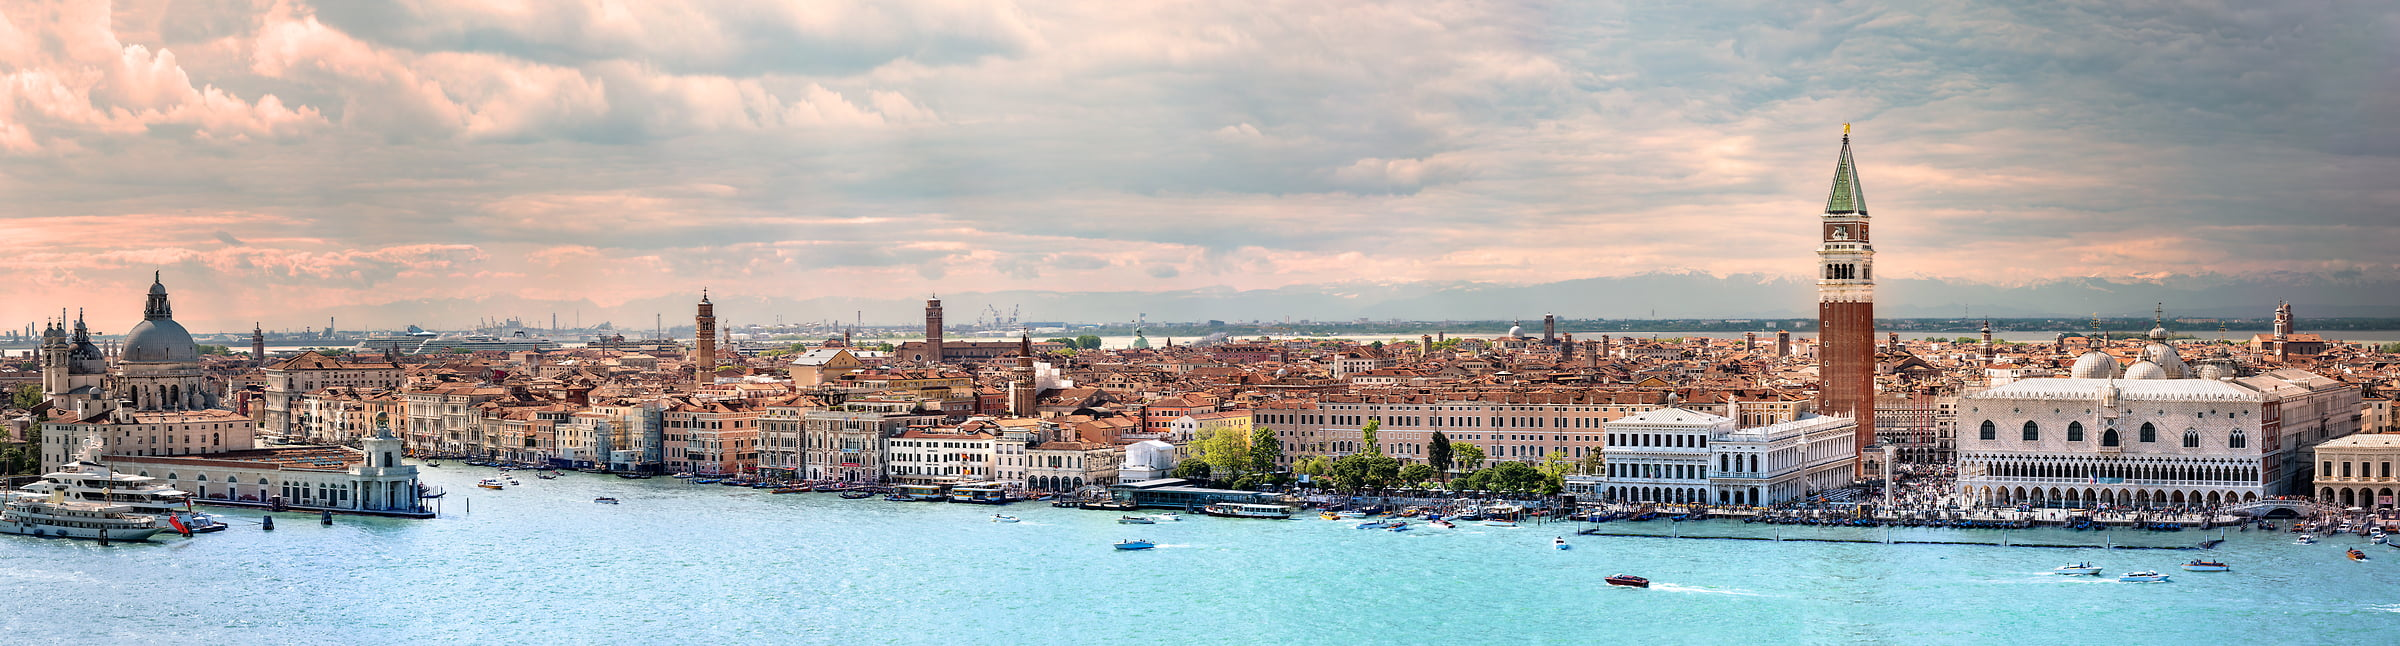 523 megapixels! A very high resolution, large-format VAST photo print of Venice, Italy with the Campanile di San Marco, canals, and boats; fine art cityscape photograph created by Justin Katz in Venice, Italy